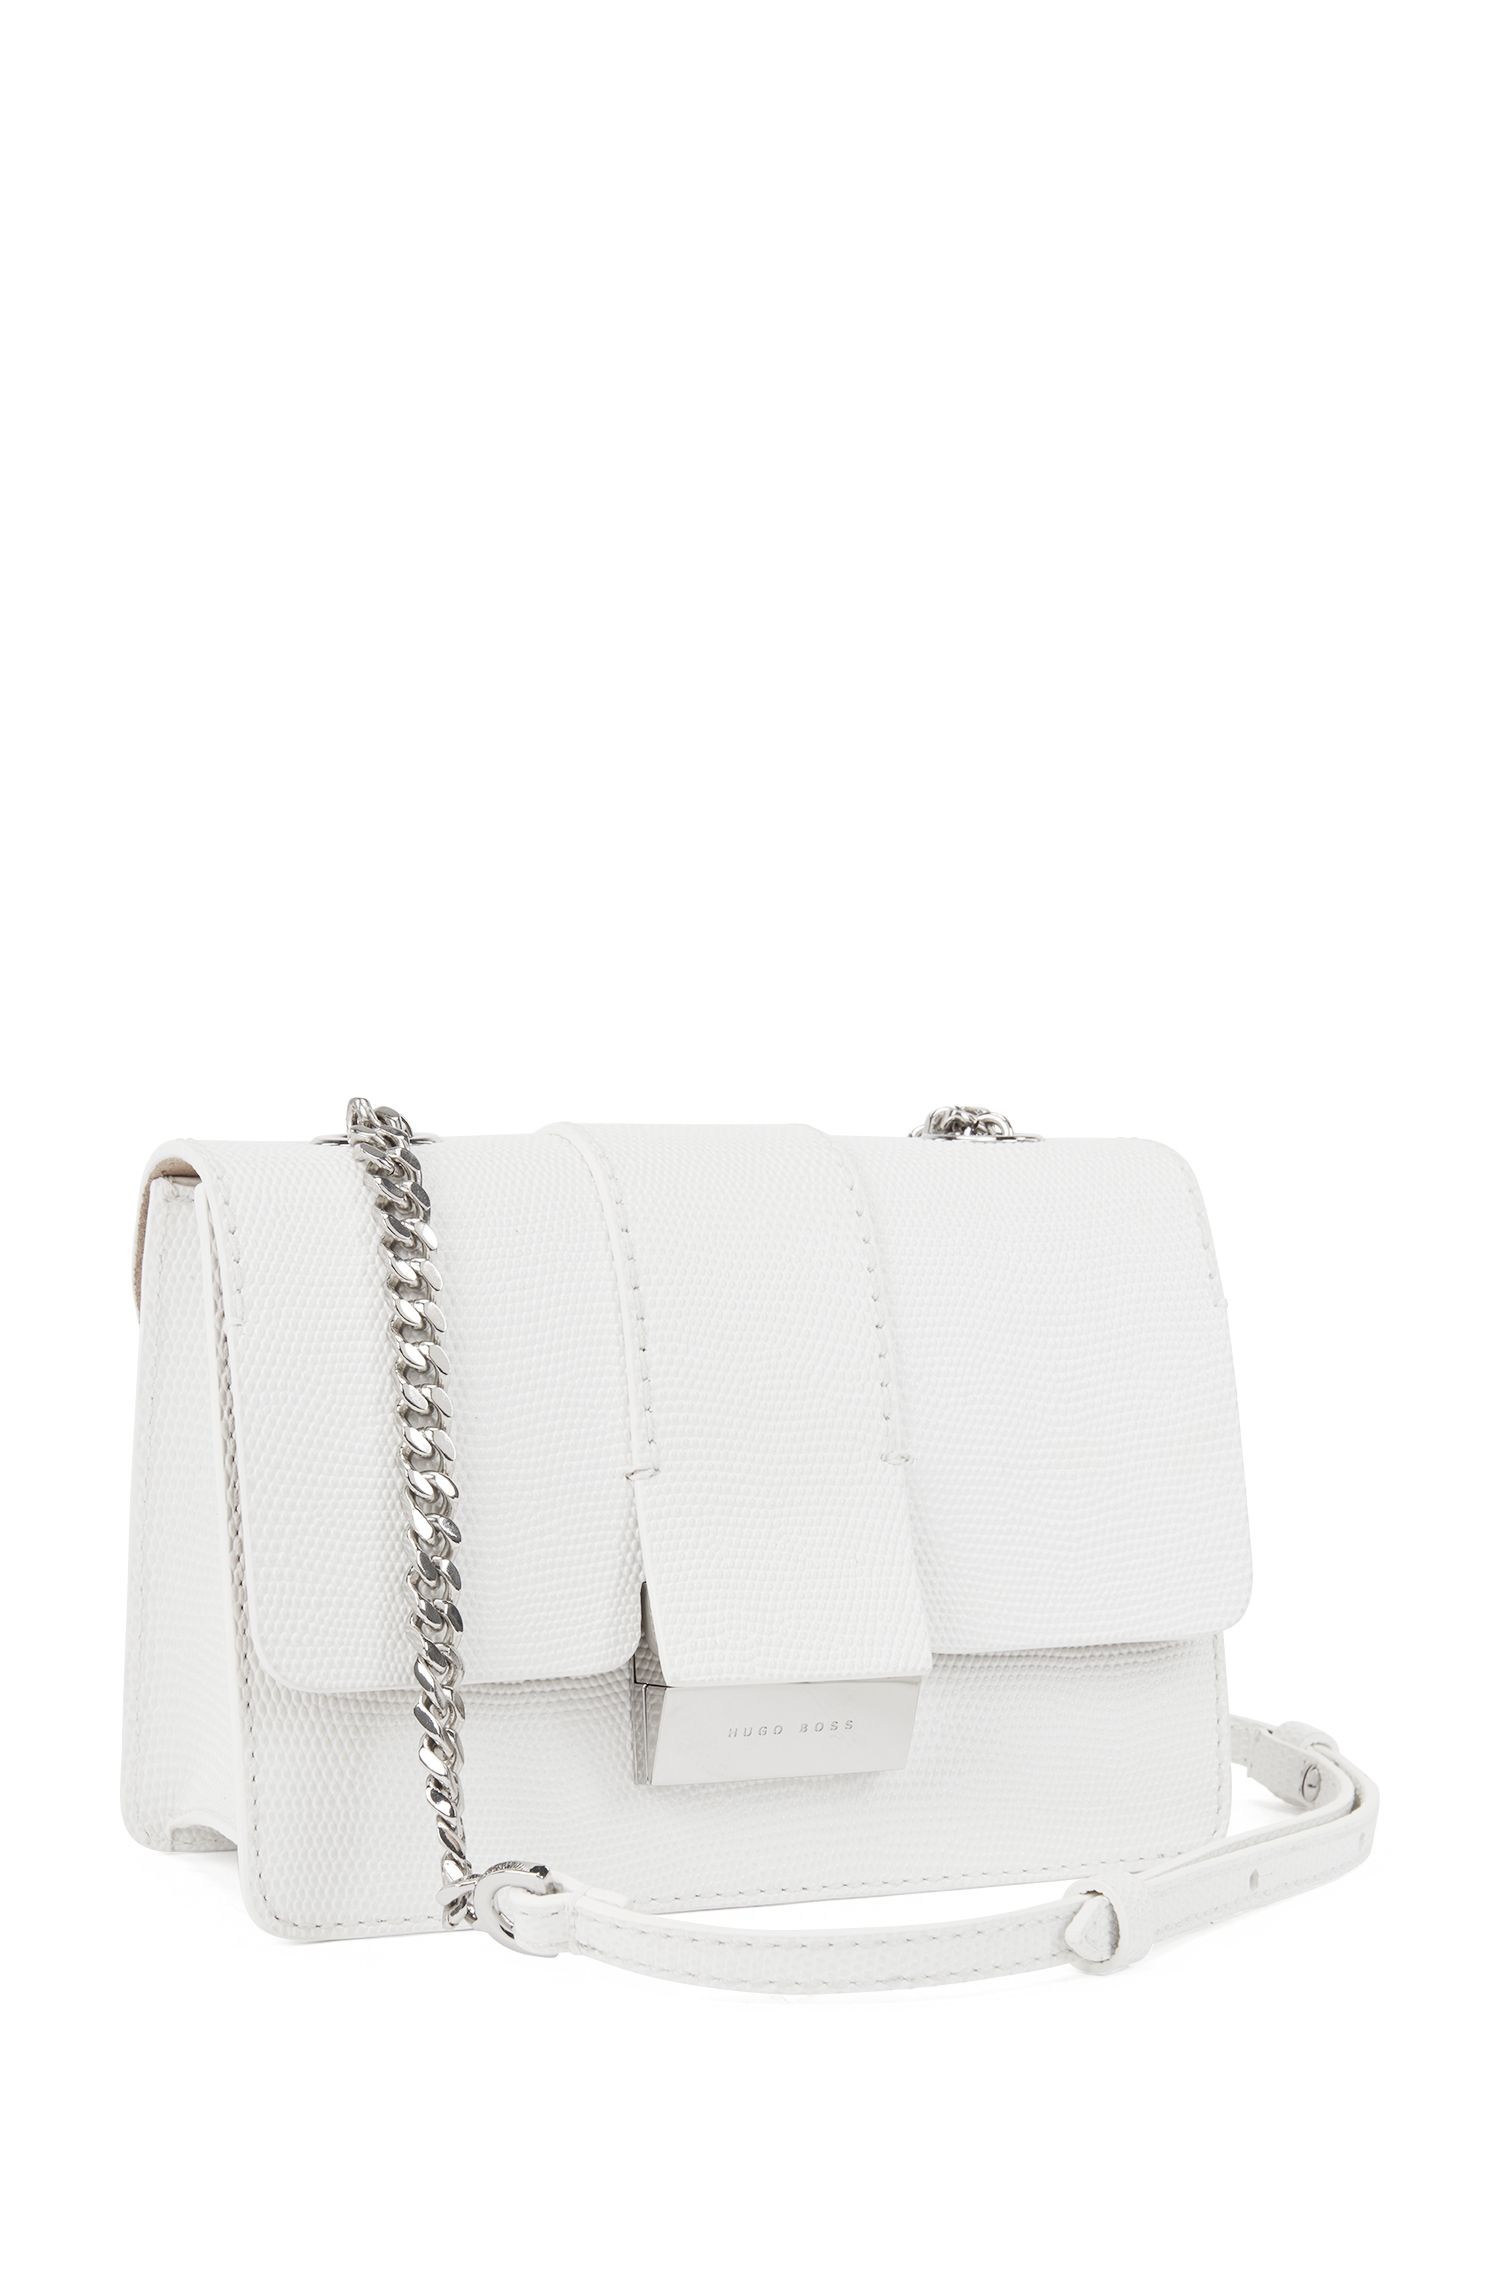 Crossbody bag in lizard-print calf leather, White